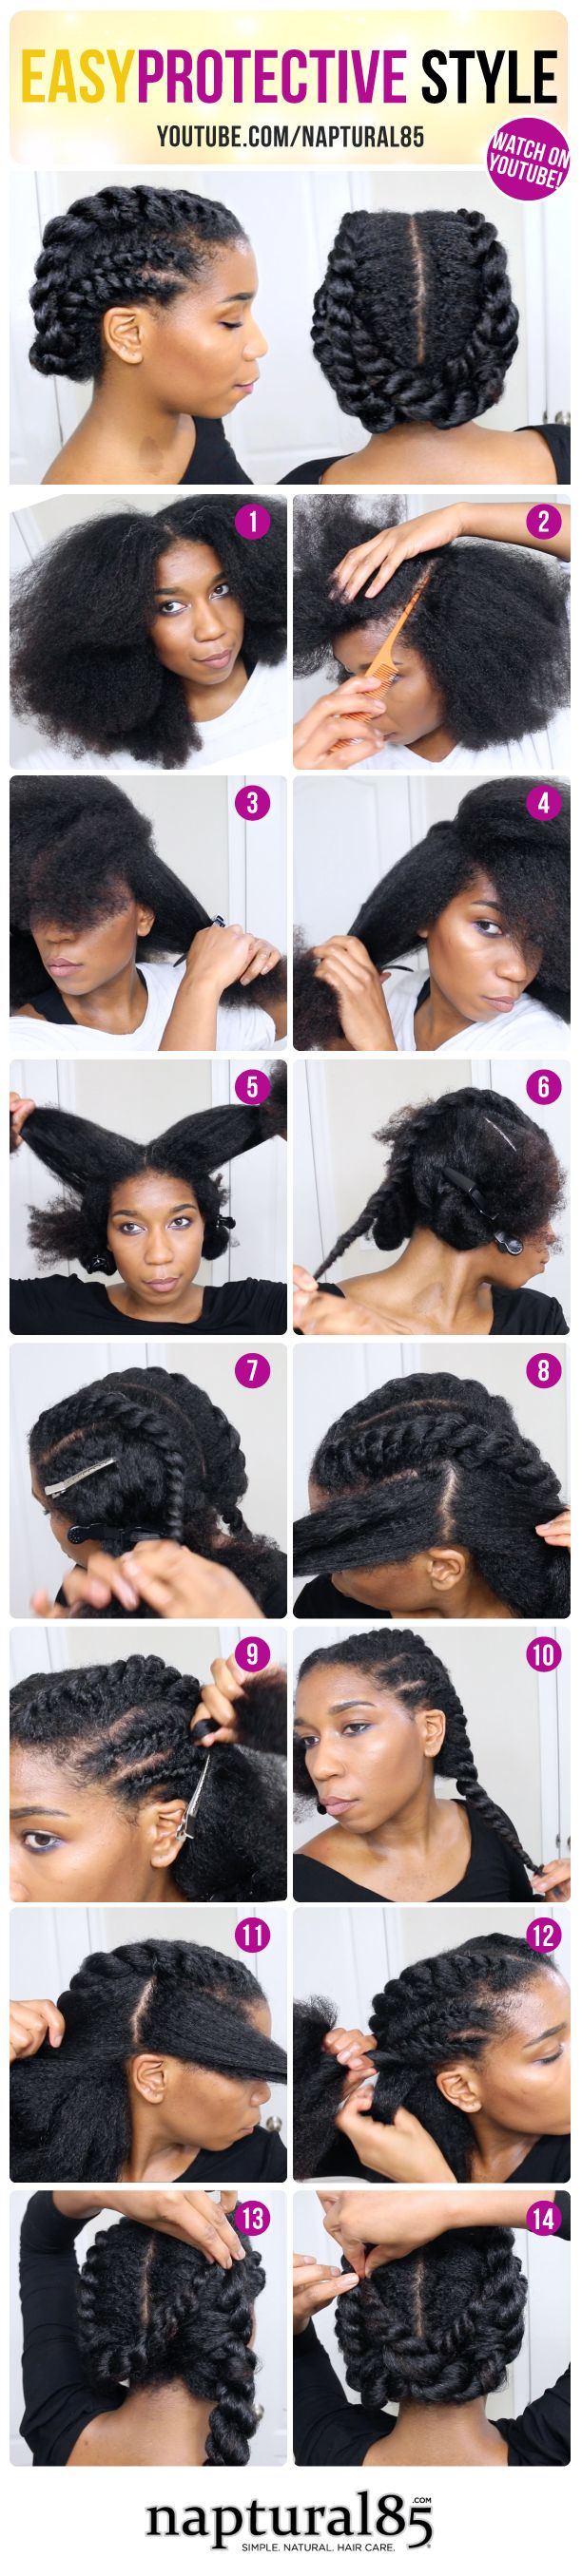 Naptural85 - Trying this hairstyle ASAP